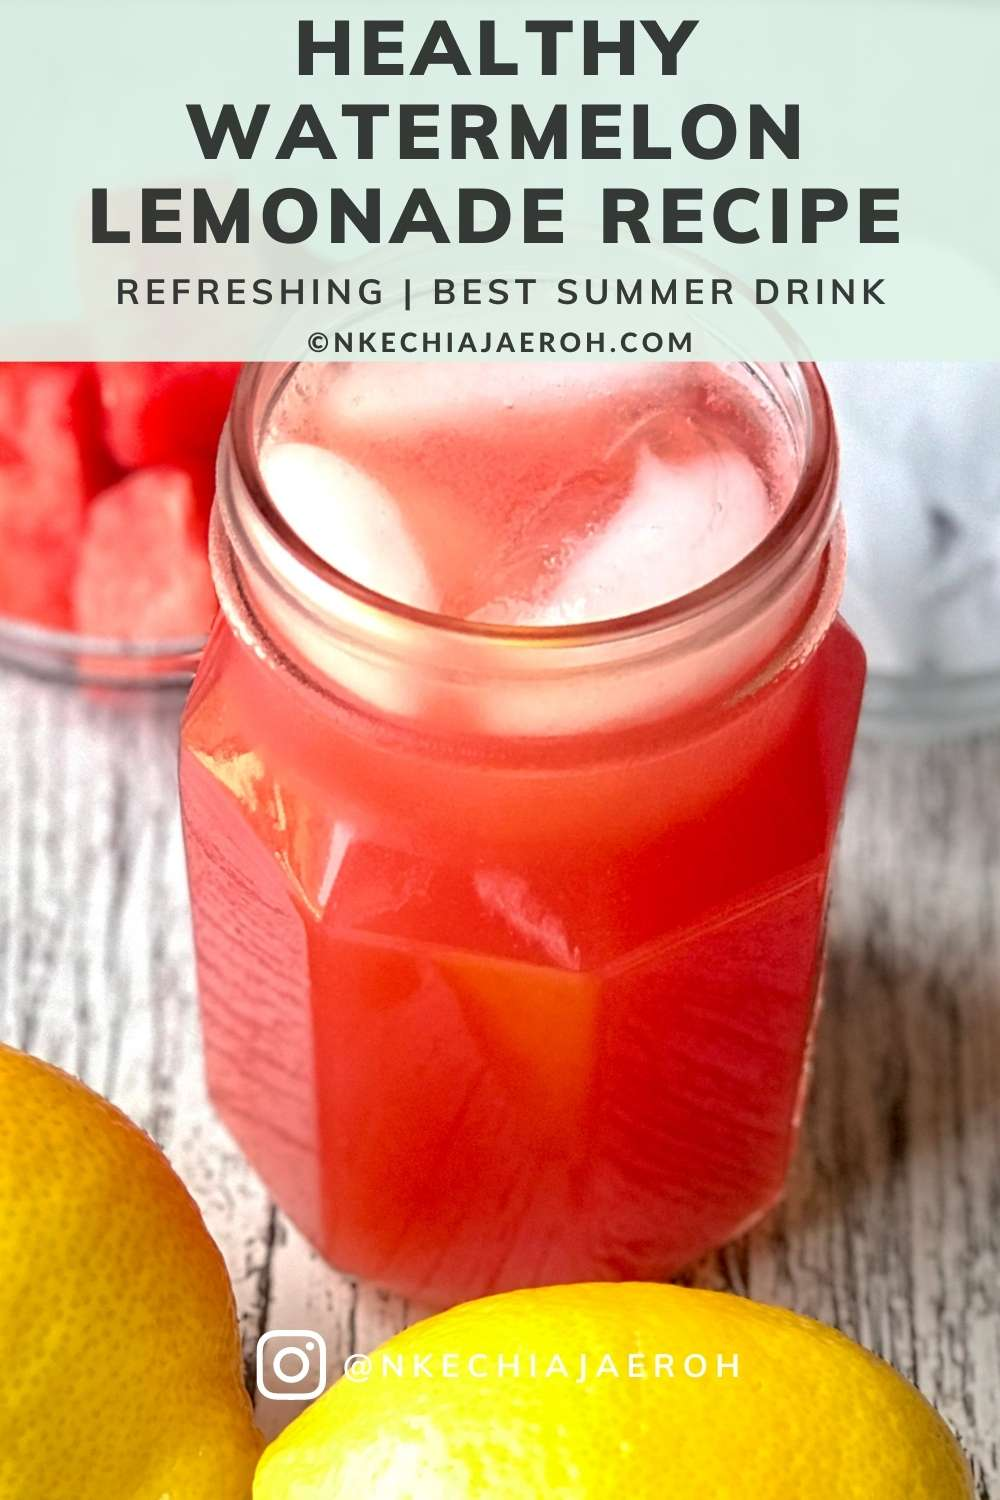 Refreshing, immune-boosting, and easy-to-make watermelon lemonade is the best summer drink you need to confront this sweltering heat! With only 3-ingredients – watermelon, lemon, and honey, you are all set for a hydrating experience! Relatively, remember to chill in the fridge and serve with ice! I mean it when I say that this is the best summer drink ever! In other words, the best healthy summer cooling drink! #watermelondrink #lemonade #Summerdrink #watermelon #summertimedrink #healthydrink